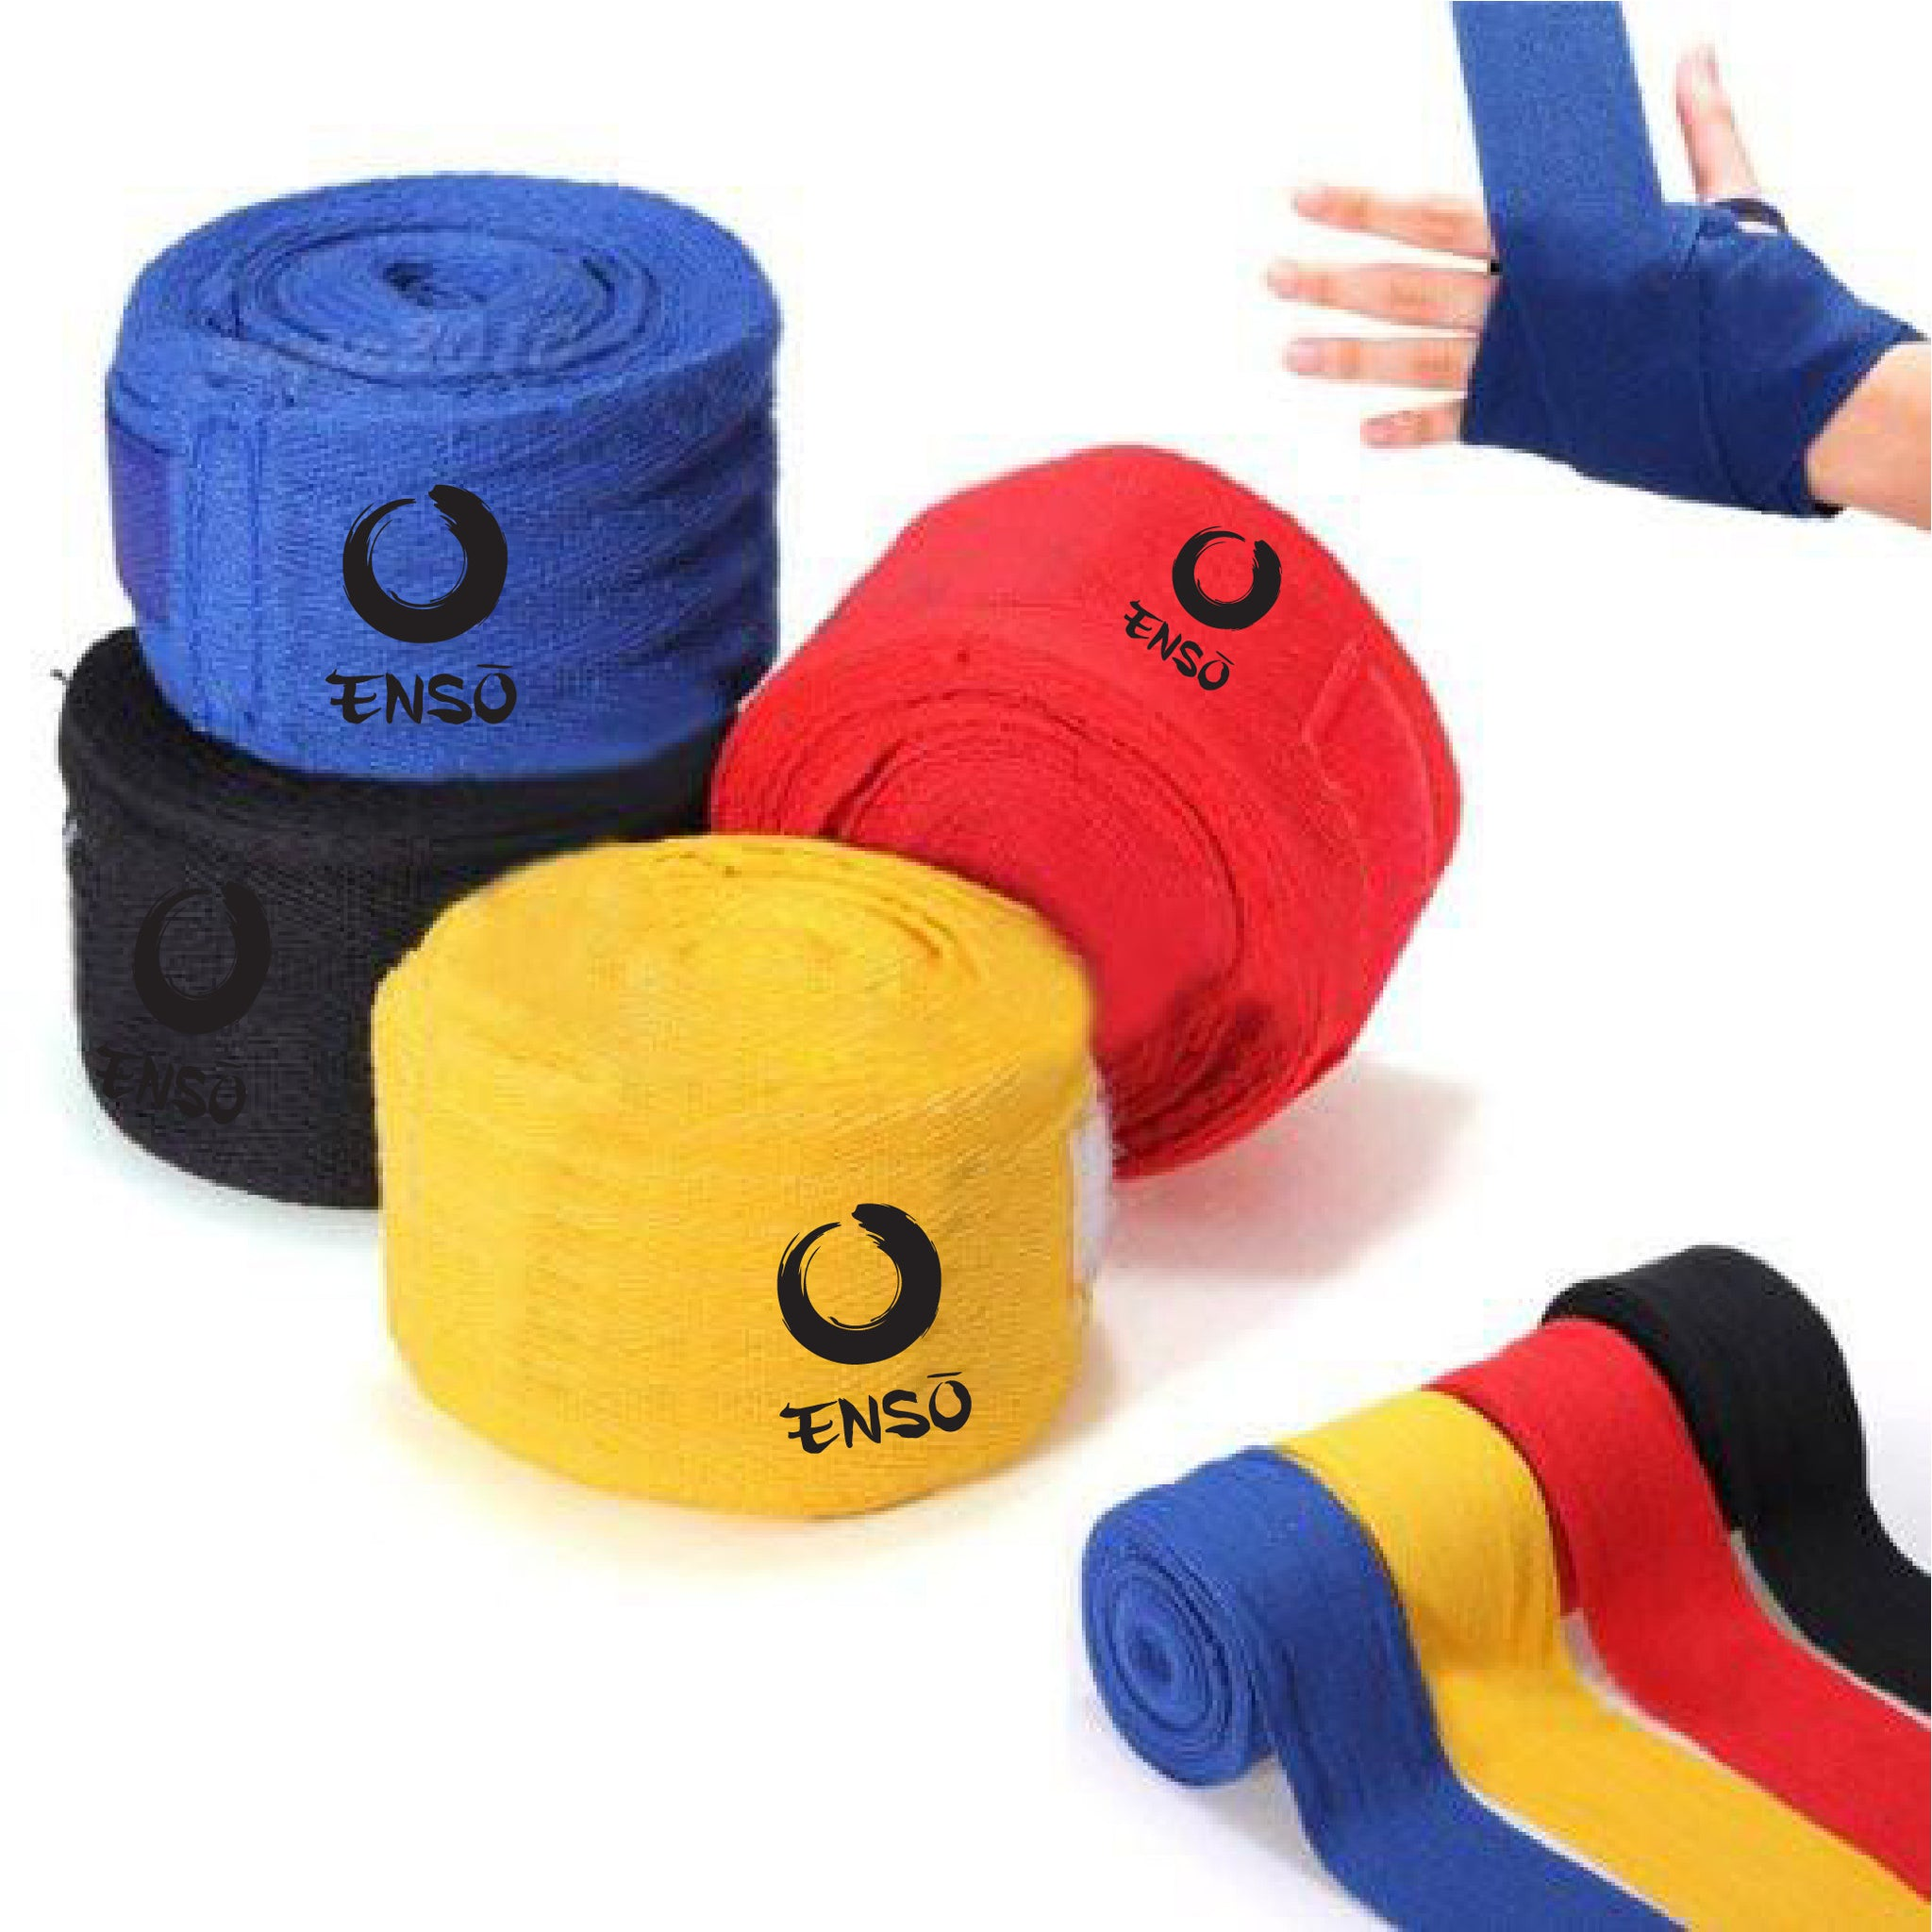 Enso Bandage Guard Supportive Wraps & Gussets